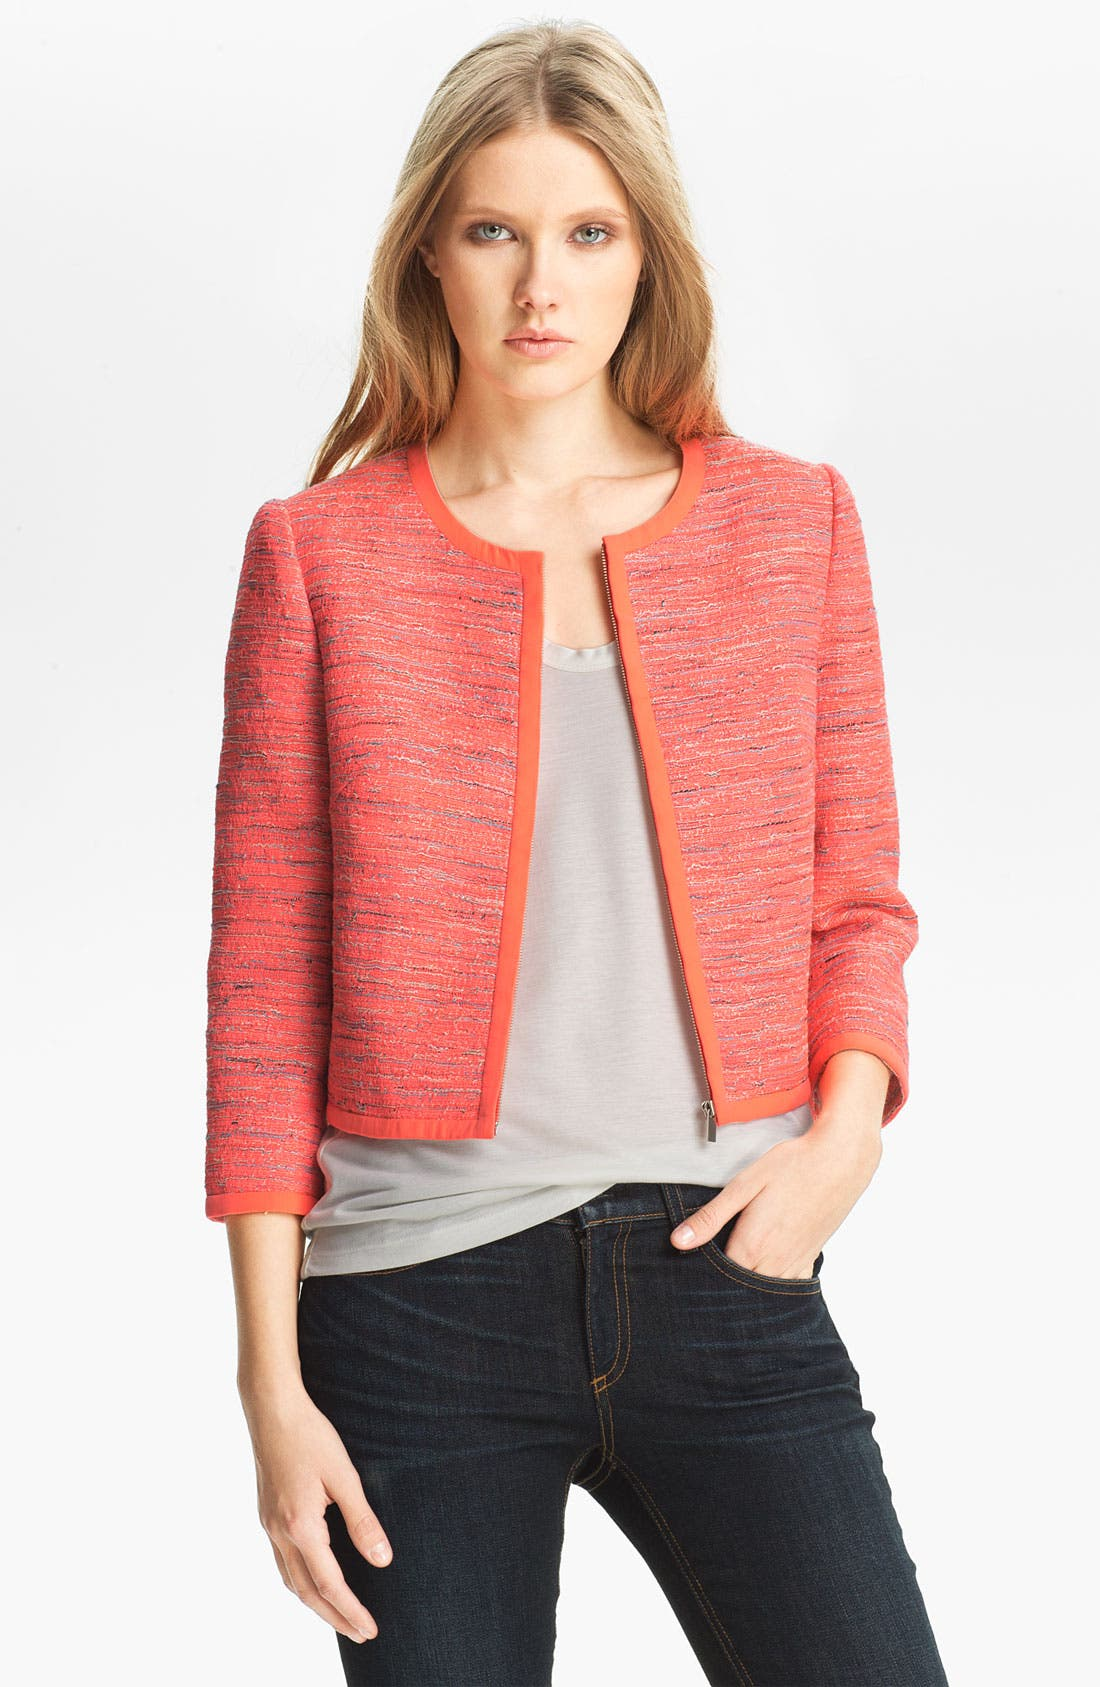 Alternate Image 1 Selected - Mcginn 'Phoenix' Tweed Jacket (Nordstrom Exclusive)